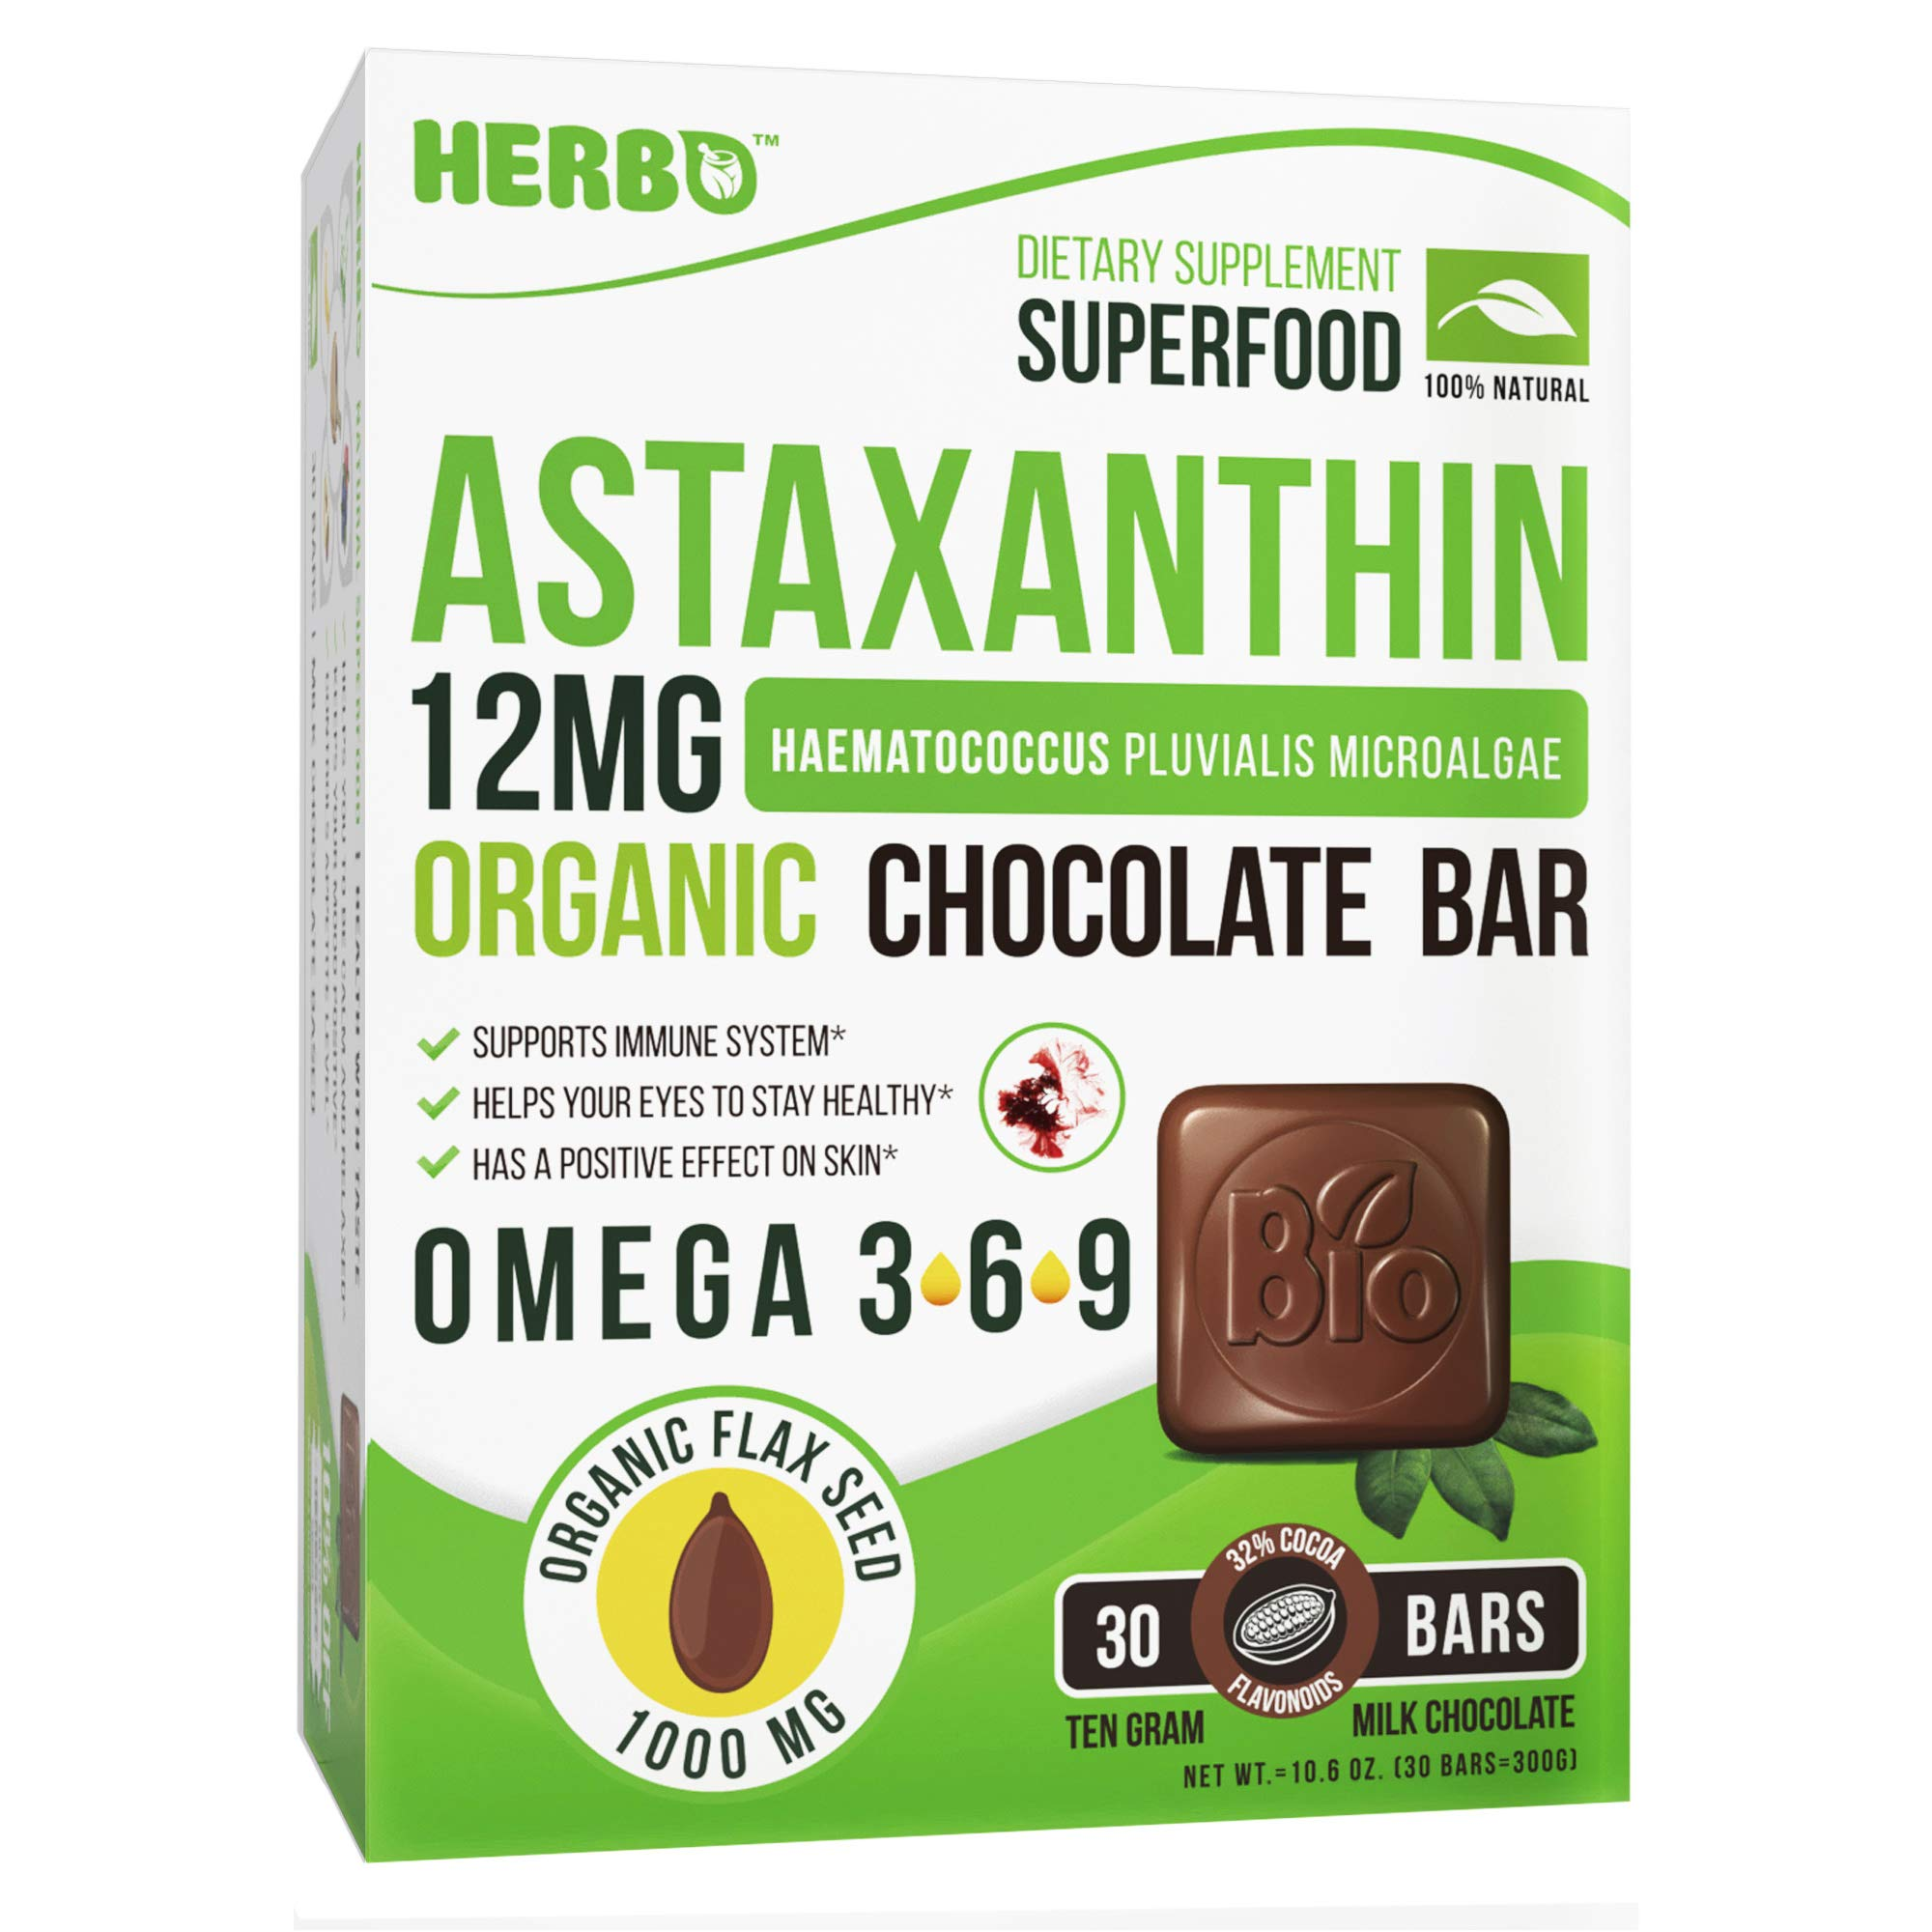 Astaxanthin 12 mg, Organic - Support Immune and Cardiovascular System, Powerful Antioxidant - Organic Superfood - Premium Taste, Organic Chocolate Bar, Organic Omega 3 - Non-GMO, Gluten Free